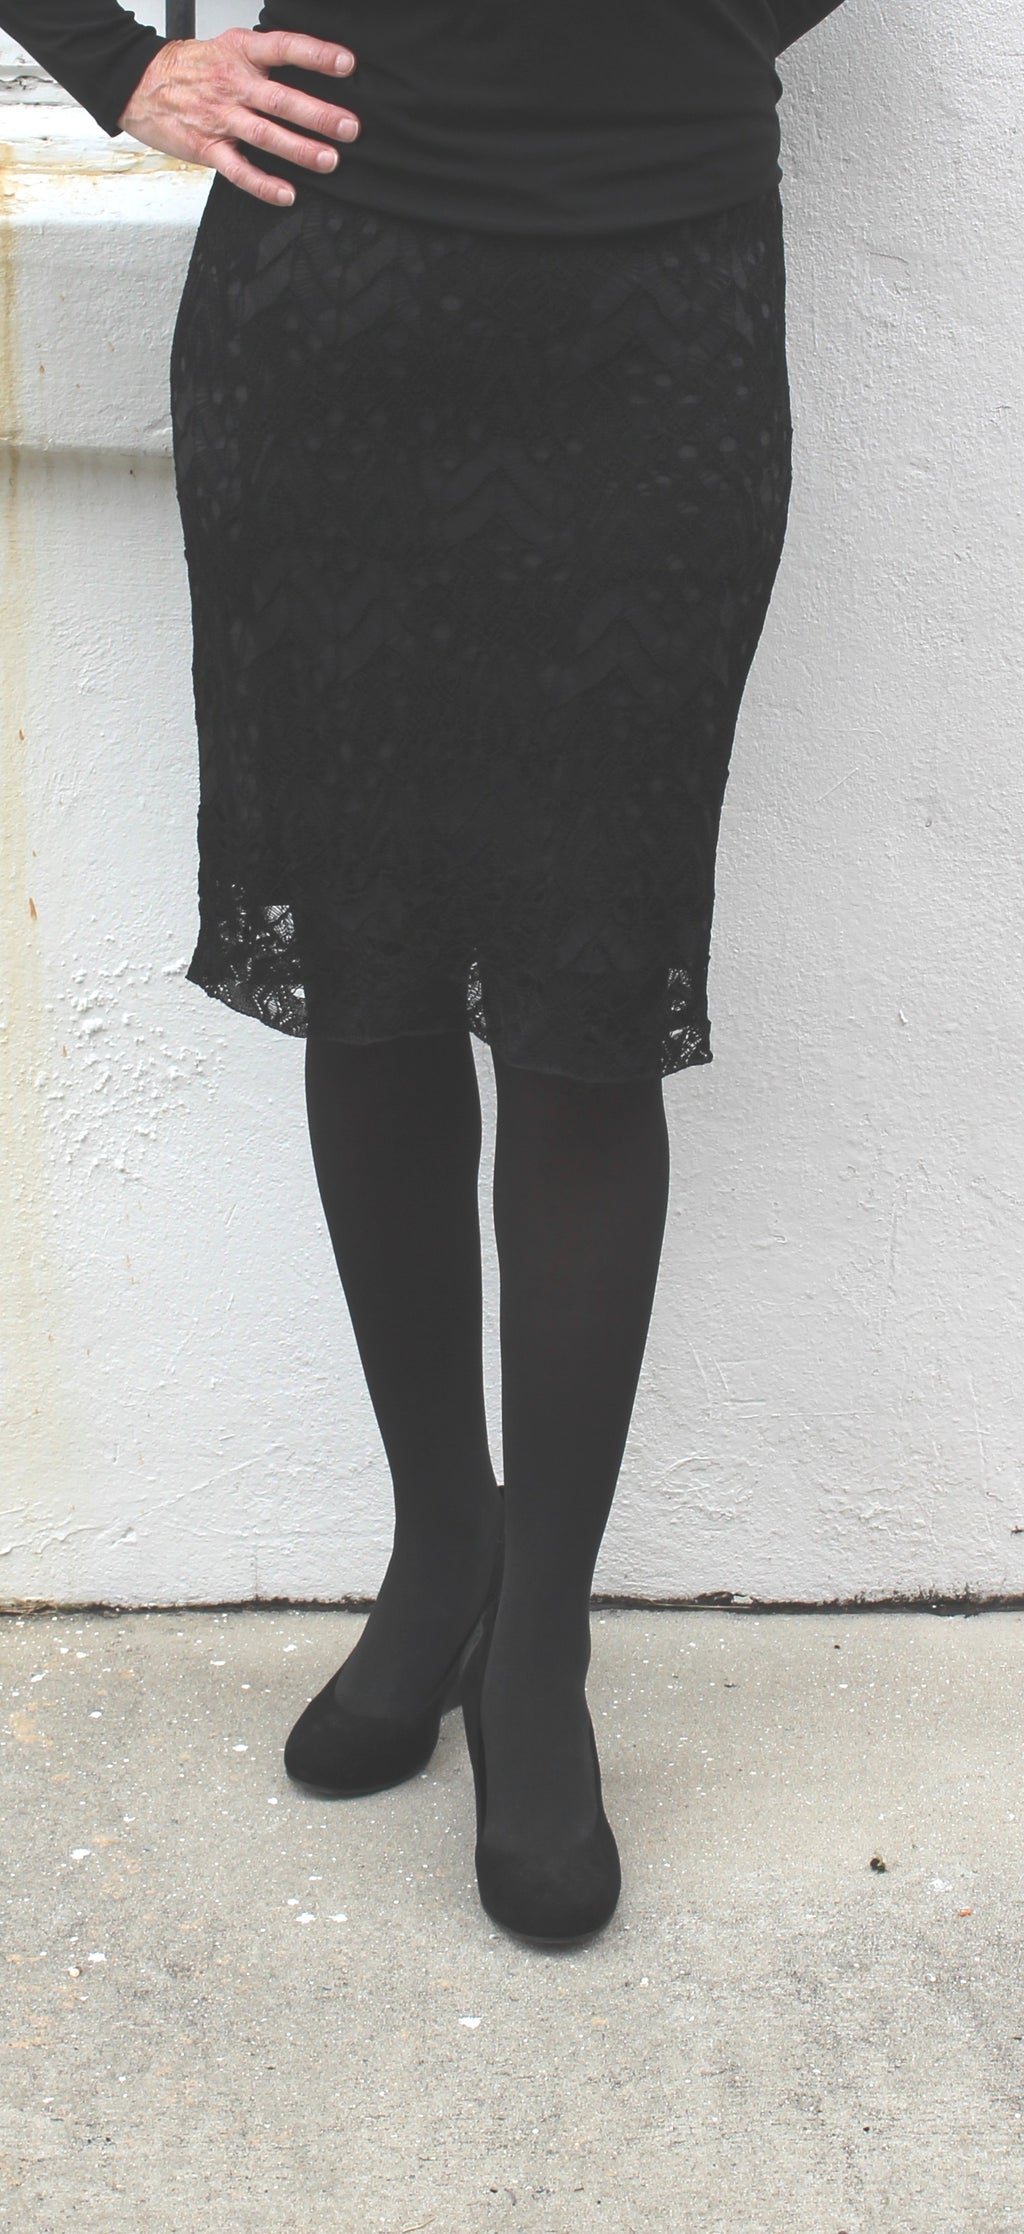 Eileen Fisher Short Skirt in Rayon Nylon Crinkle Lace in Black